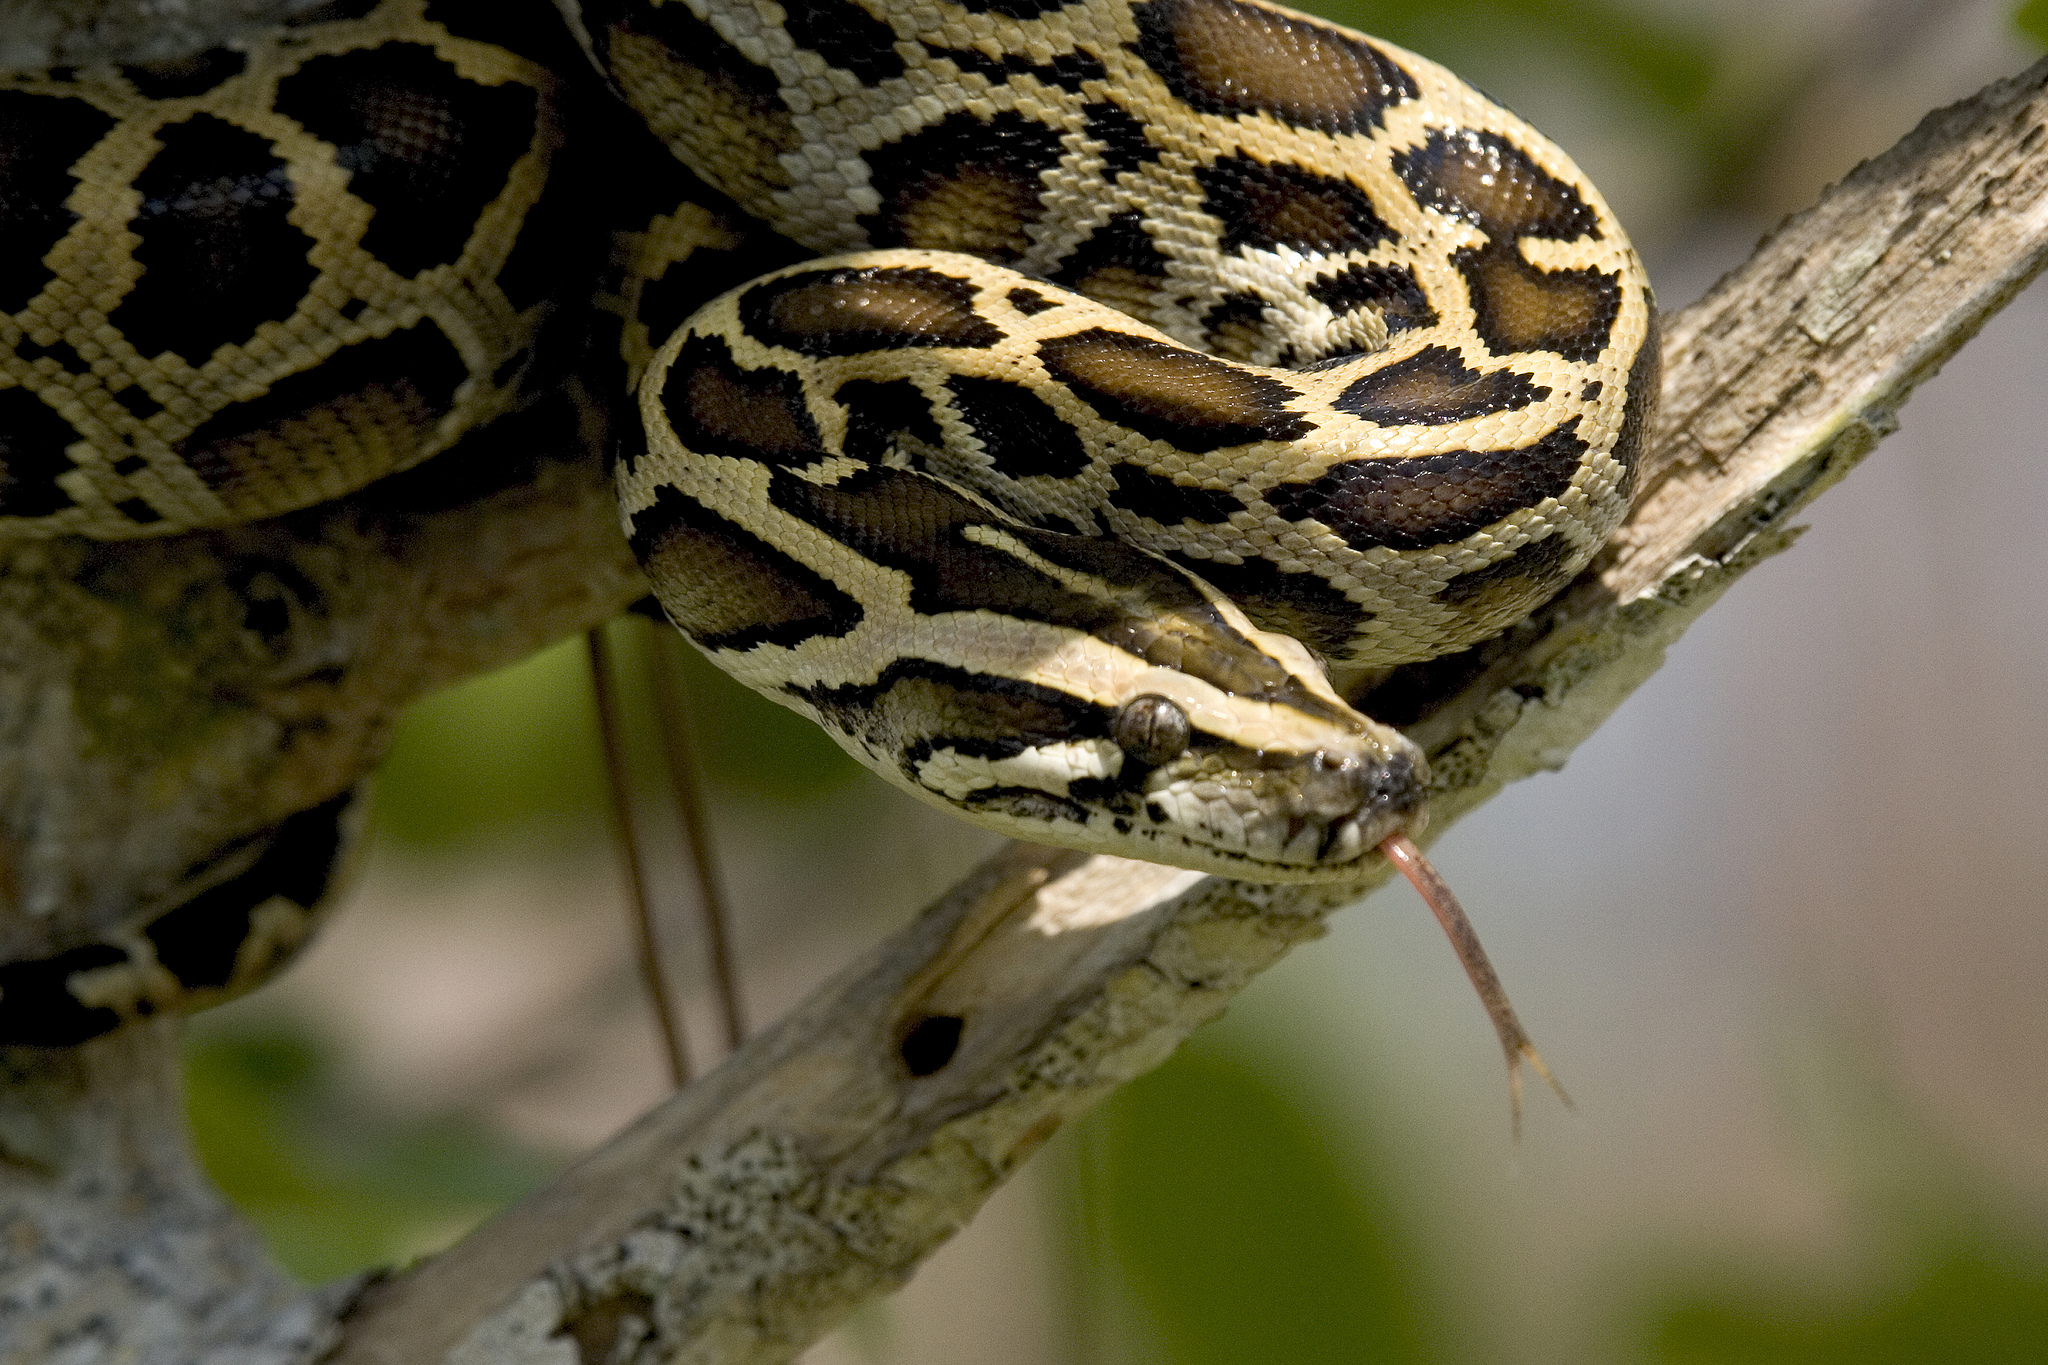 Burmese python wrapped around tree branch